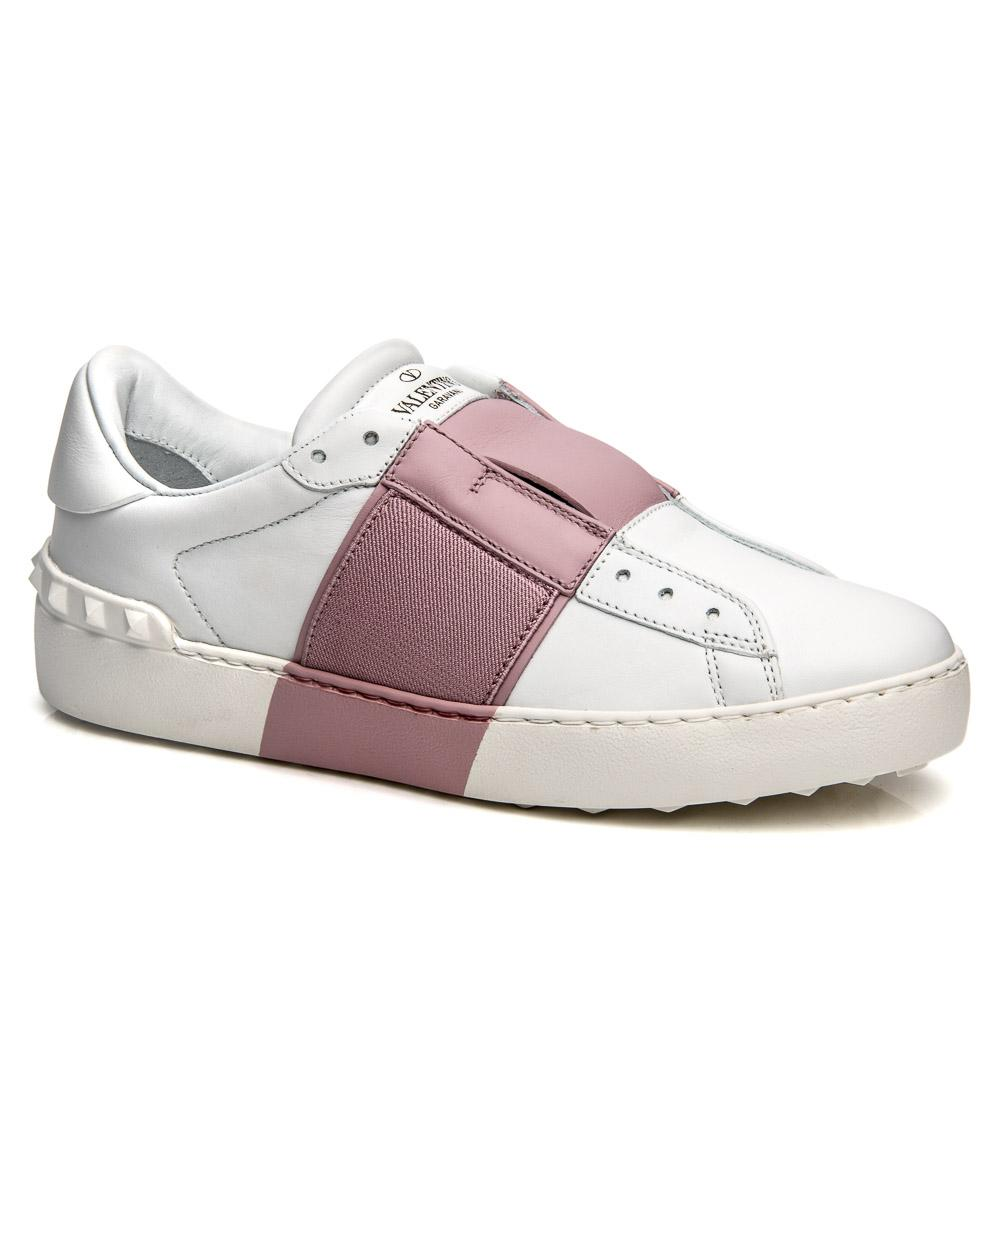 Lyst - Valentino Pink Elastic Band Sneaker in Pink